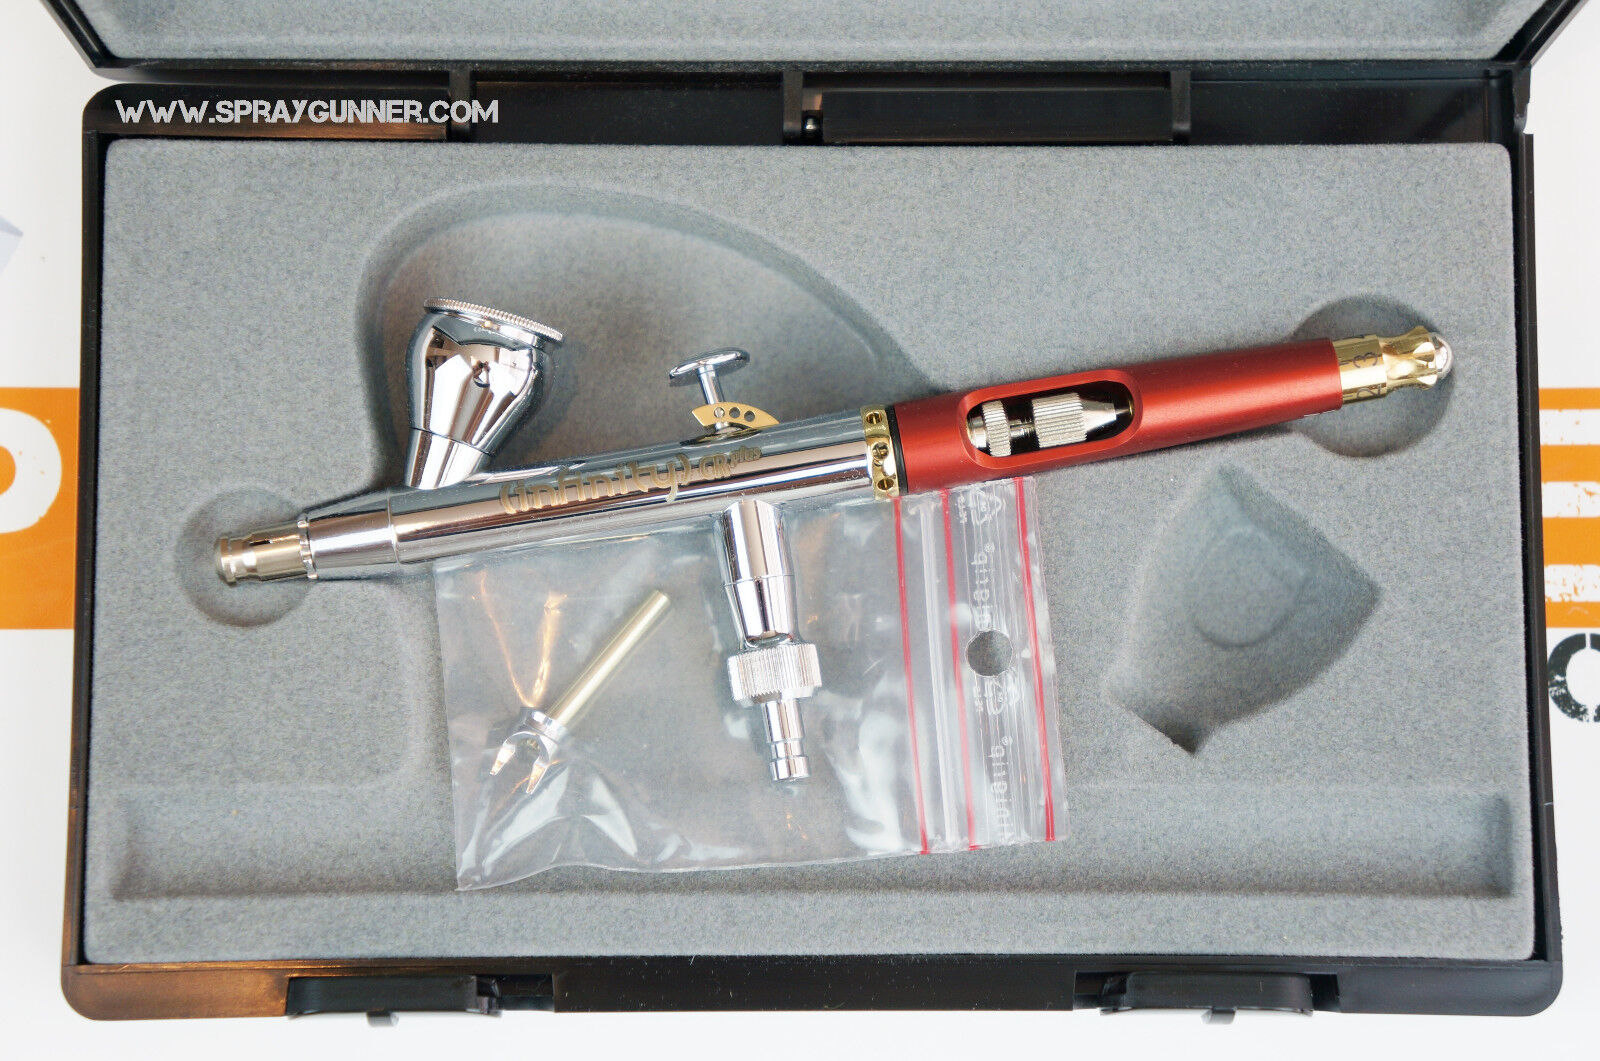 Harder /& Steenbeck Infinity CR Plus 0.2mm Airbrush  with Cleaning Brush Set